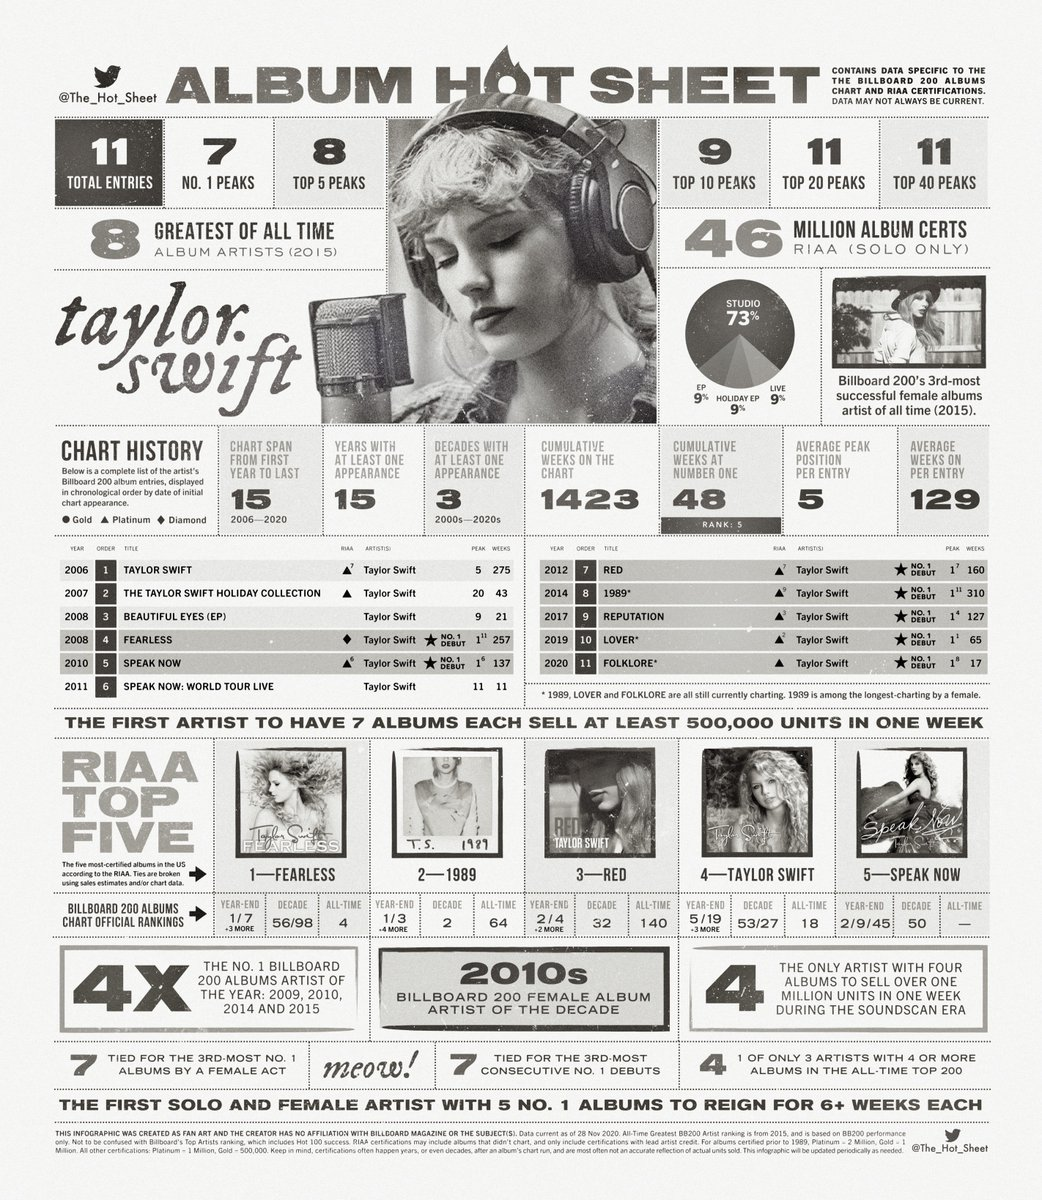 The Hot Sheet On Twitter Album Hot Sheet Taylor Swift Billboard 200 Album Chart History Load 4k Image For Best Viewing